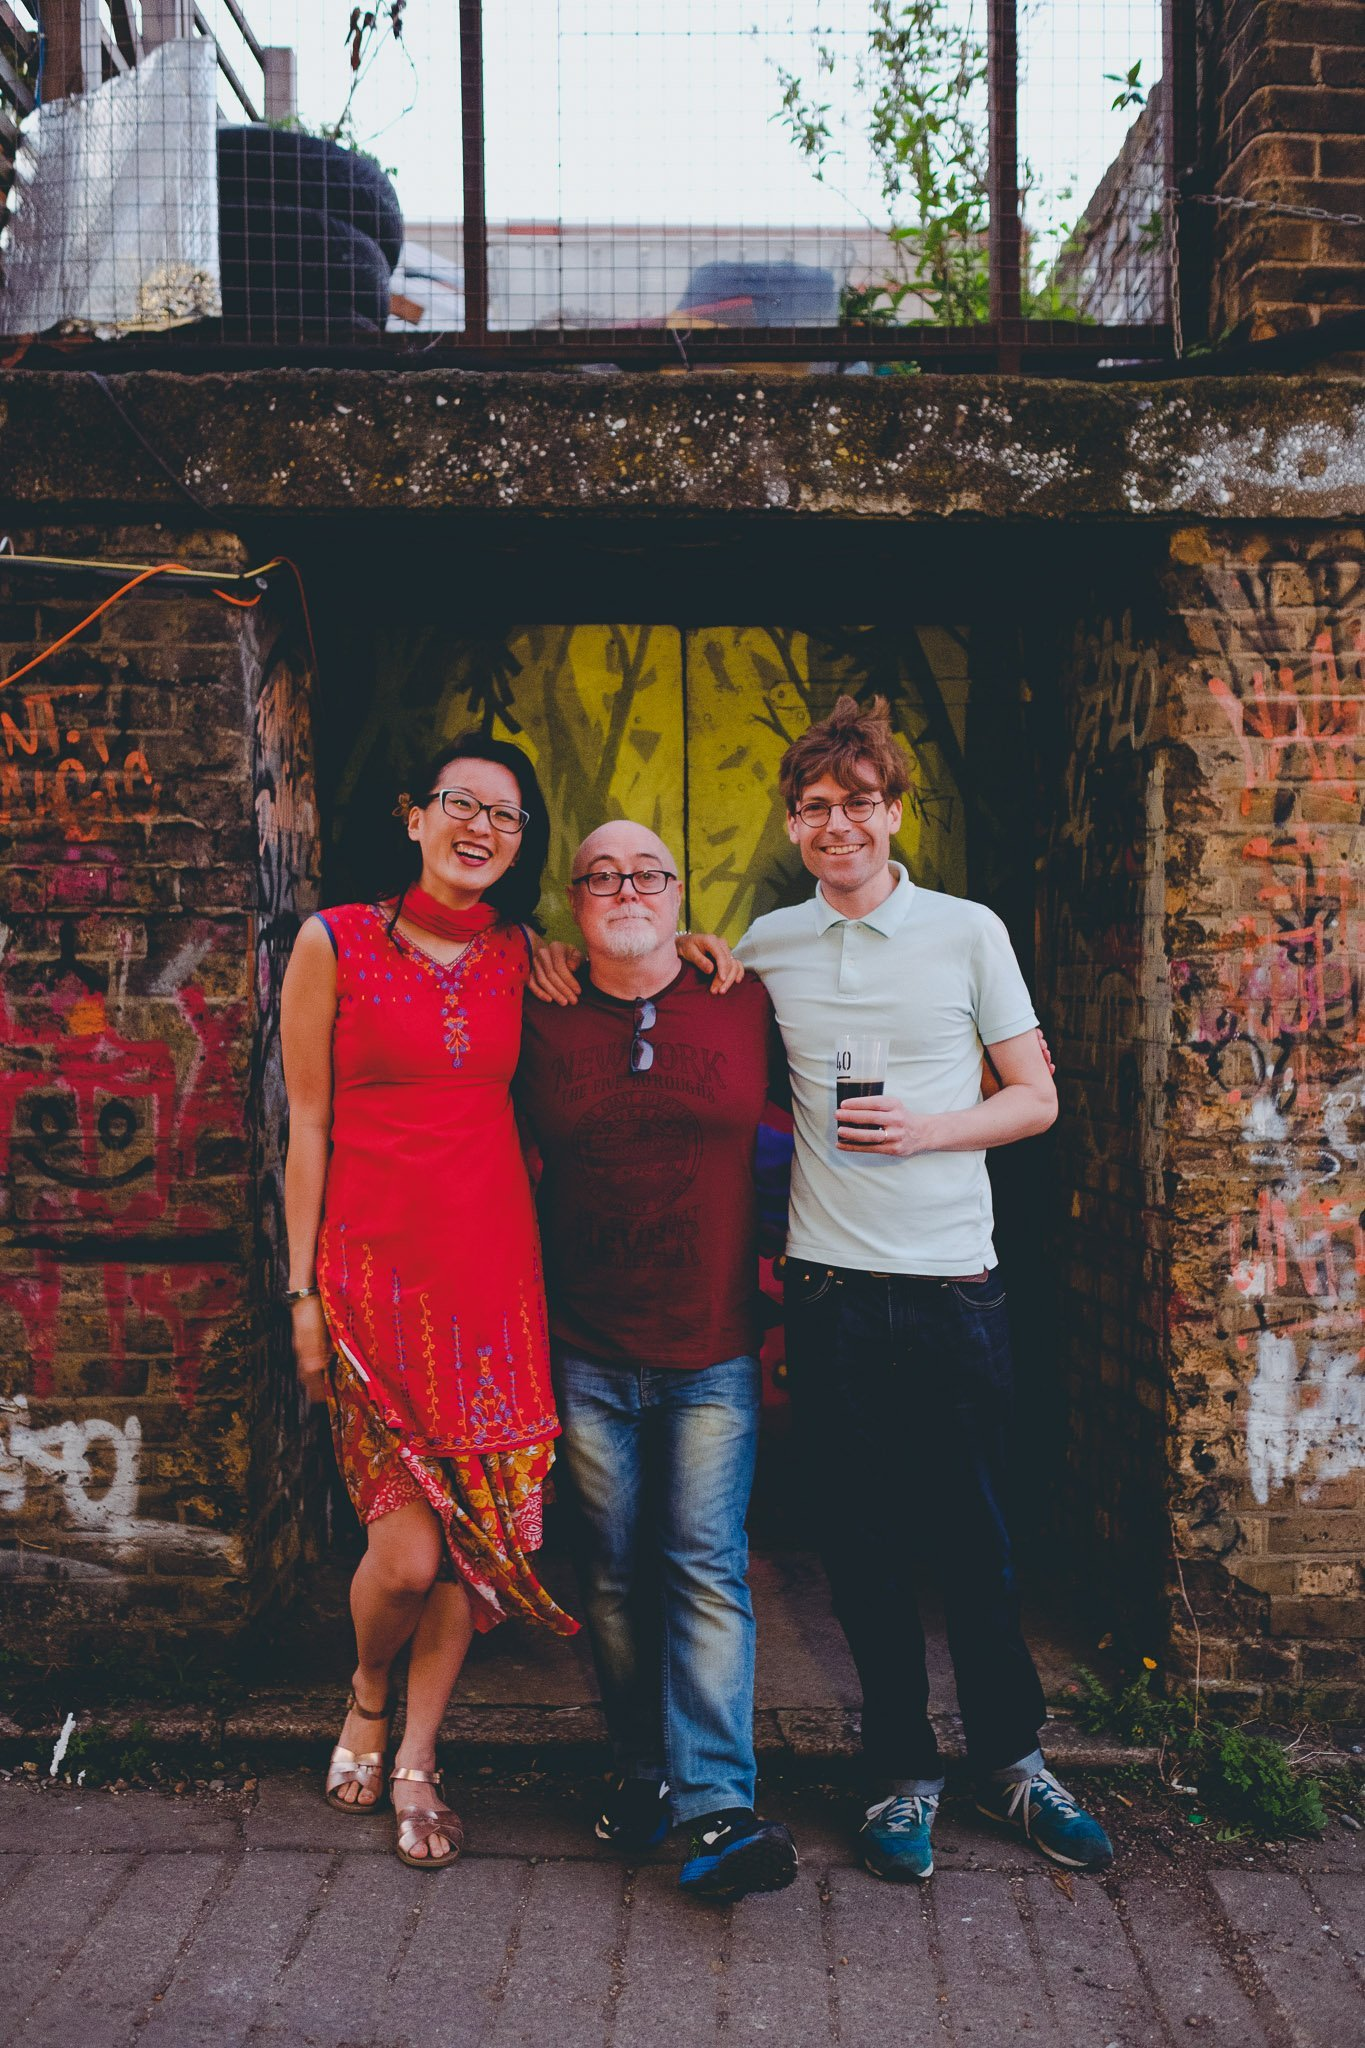 Portrait of Pascal O'Loughin & David and Ping Henningham at 40FT Brewery in Dalston London